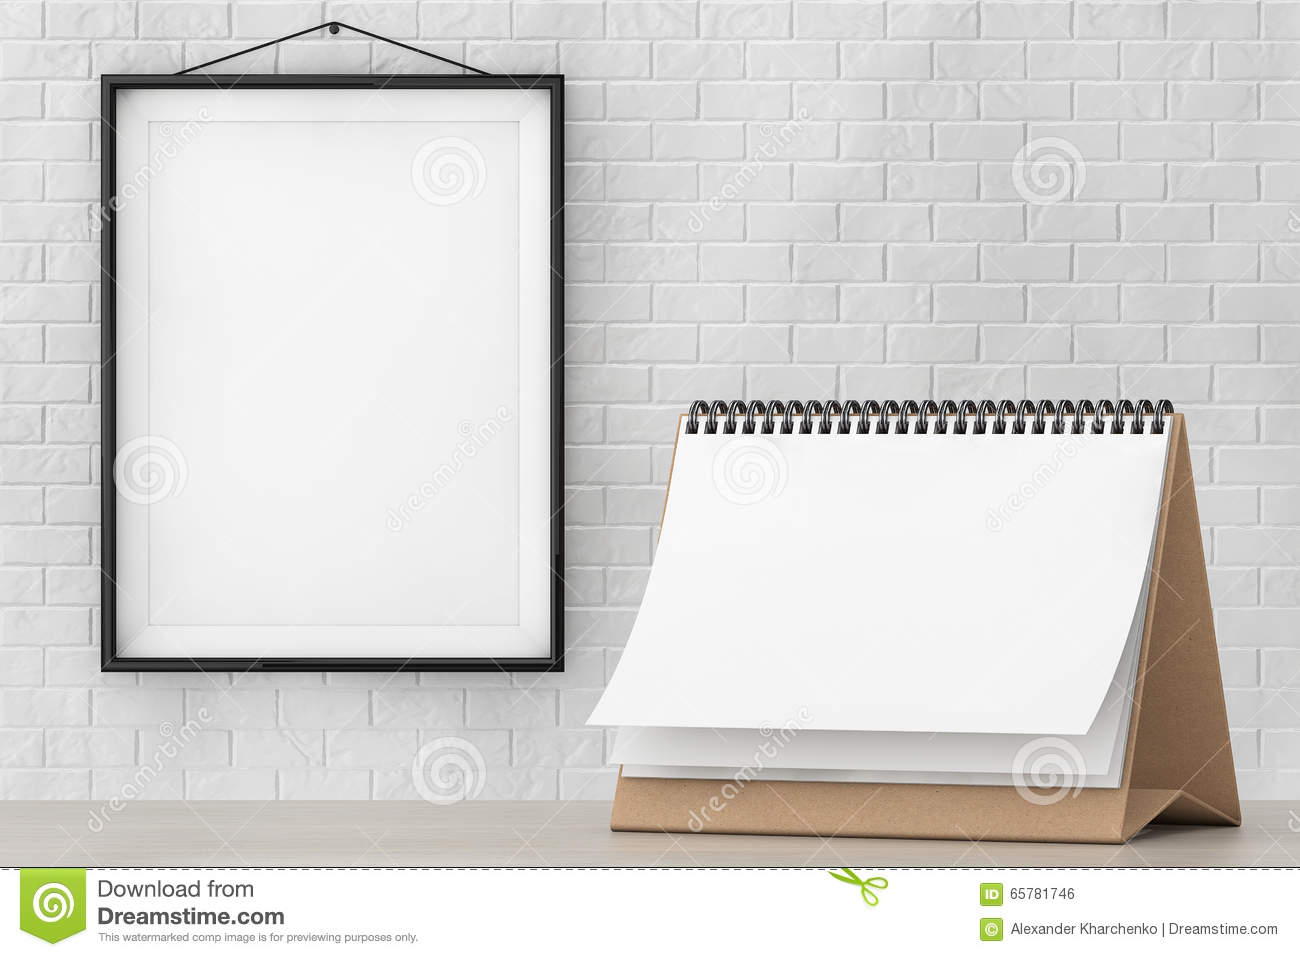 Blank Paper Desk Spiral Calendar In Front Of Brick Wall With Frame